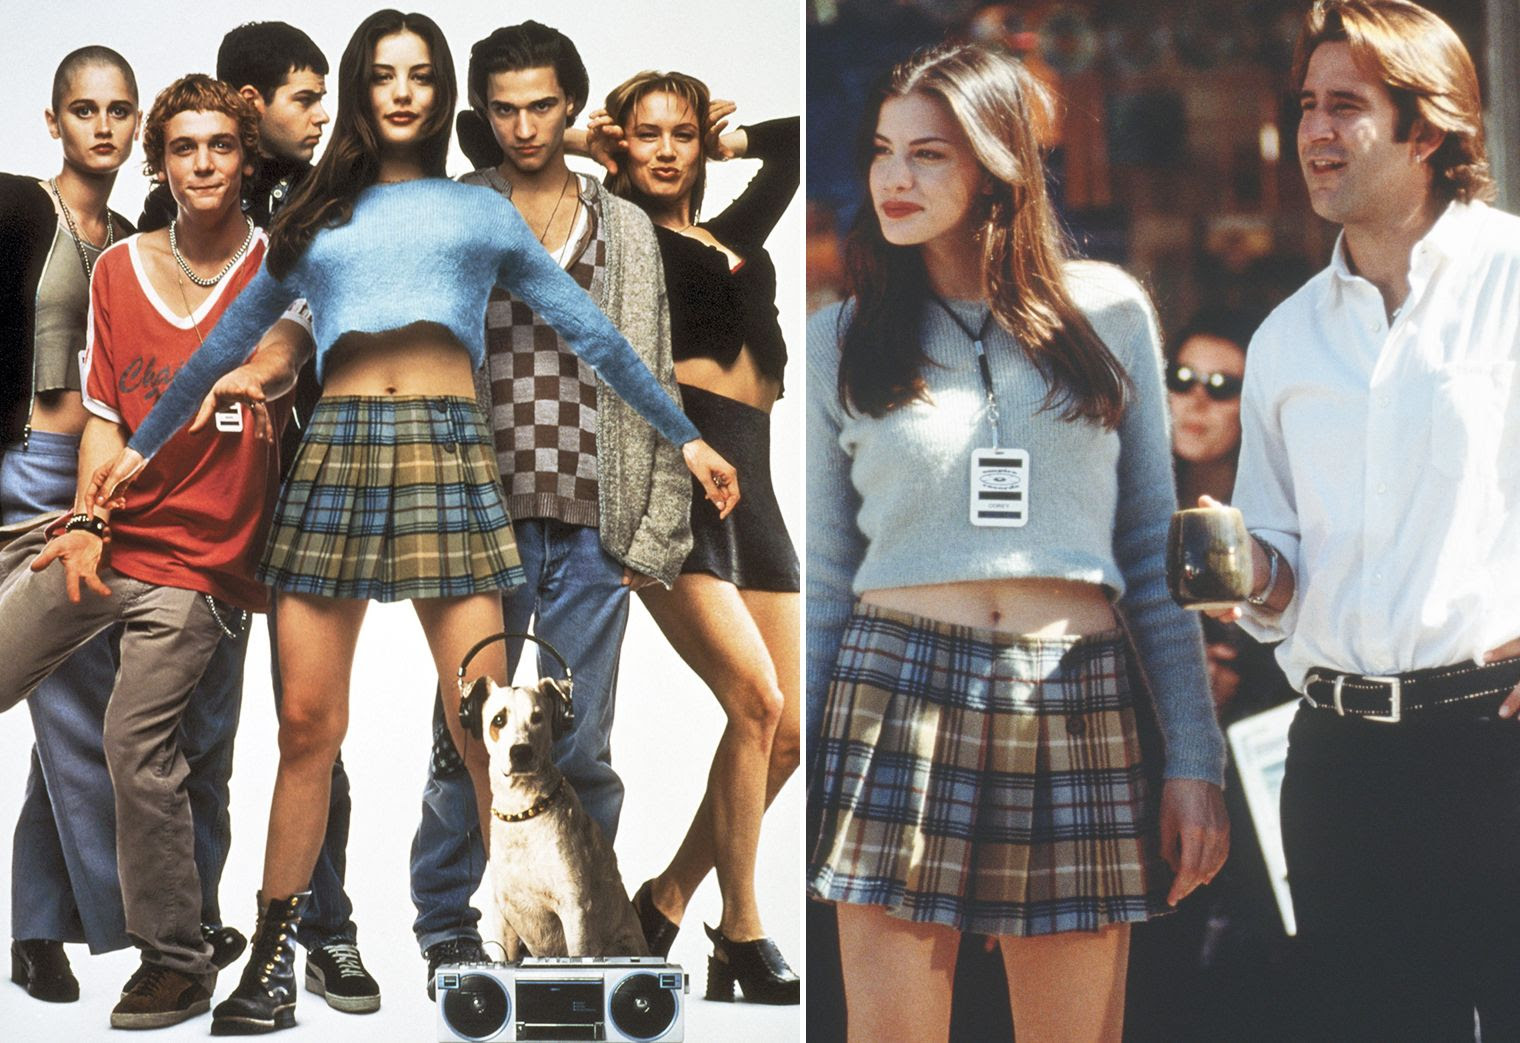 1 Le Fashion Blog 7 Stylish Film Inspired Halloween Costume Ideas Liv Tyler Corey Empire Records Crop Top Plaid Skirt photo 1-Le-Fashion-Blog-7-Stylish-Film-Inspired-Halloween-Costume-Ideas-Liv-Tyler-Corey-Empire-Records-Crop-Top-Plaid-Skirt.jpg